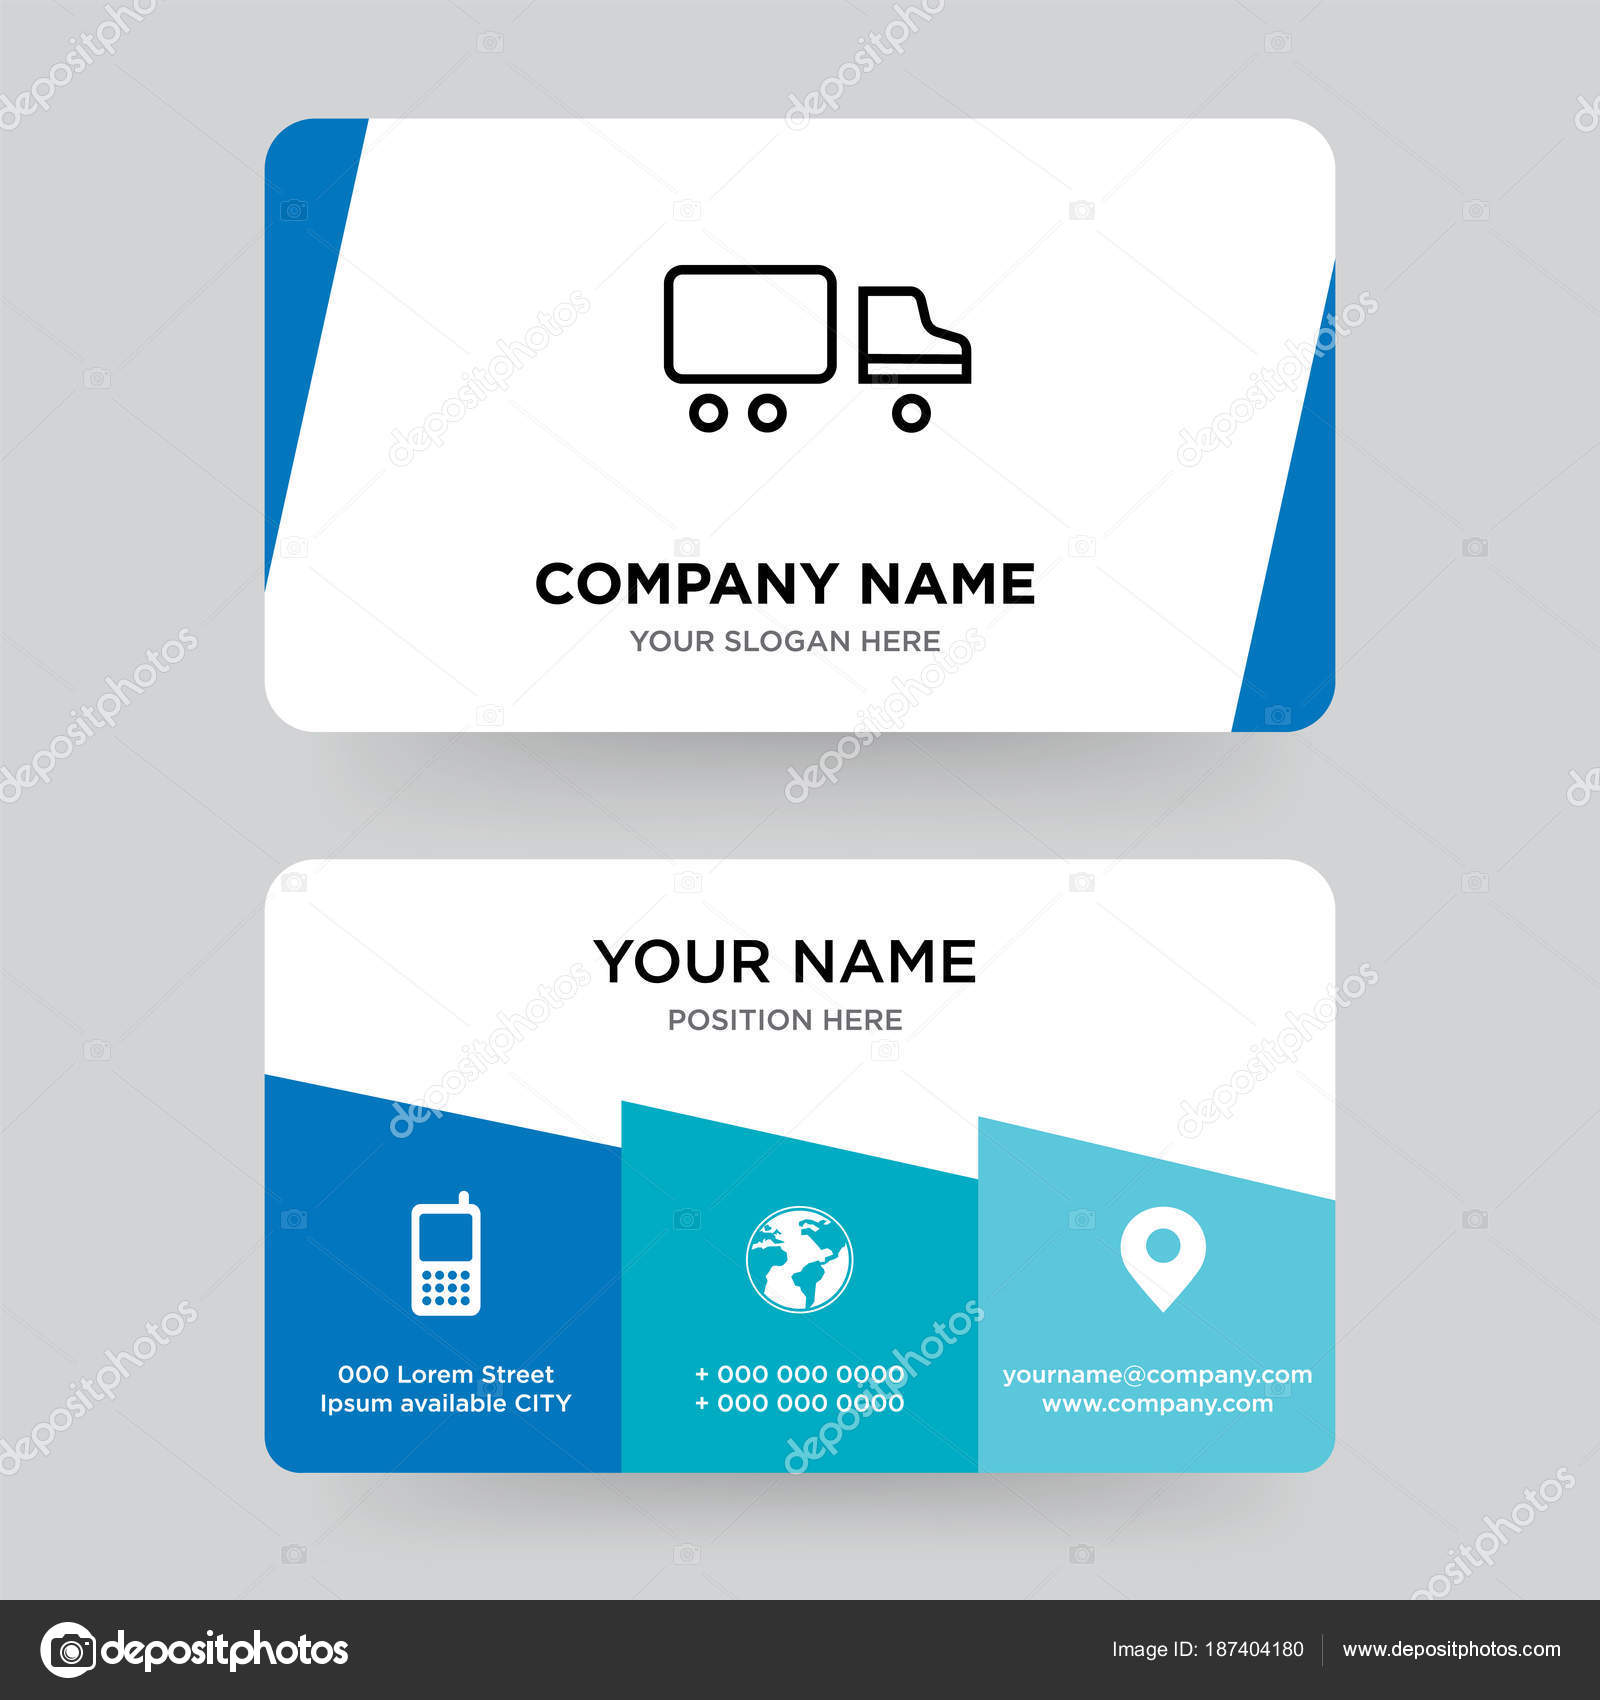 Shipping car business card design template visiting for your co shipping car business card design template visiting for your co stock vector fbccfo Choice Image